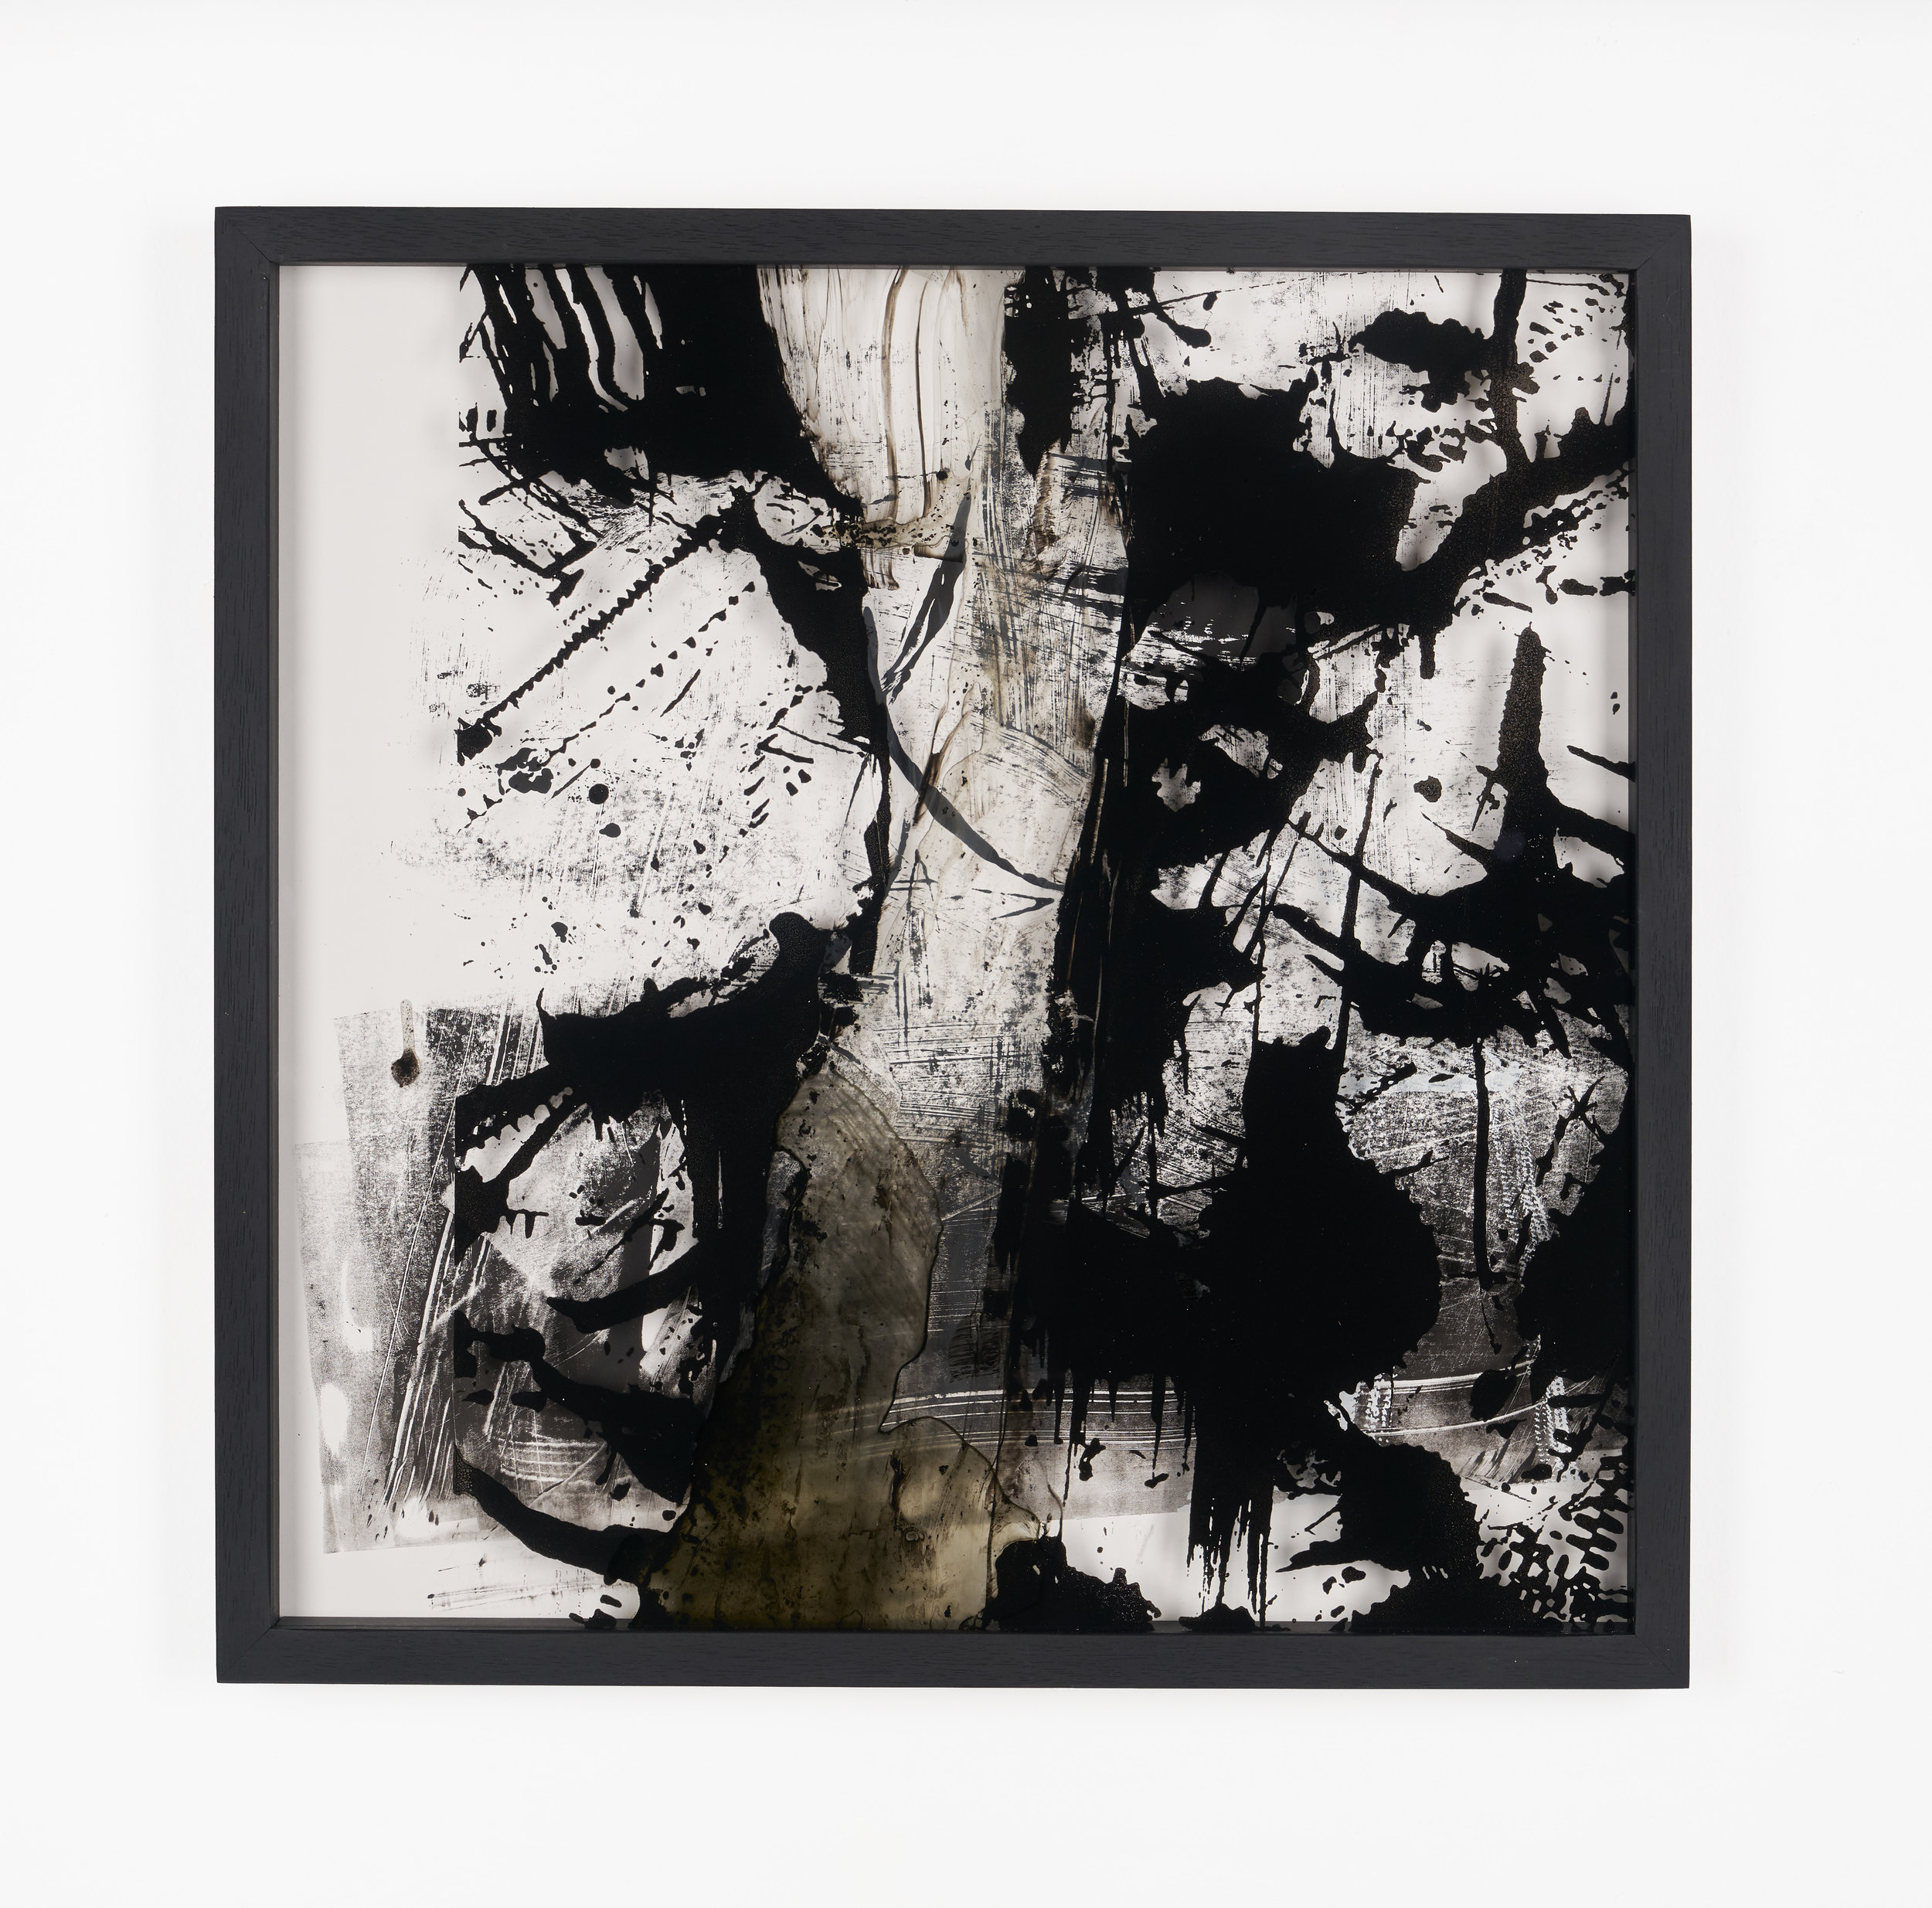 Impossibility of repetition #1-5 2019, Screen paint on glass and paper , 50cm by 50cm